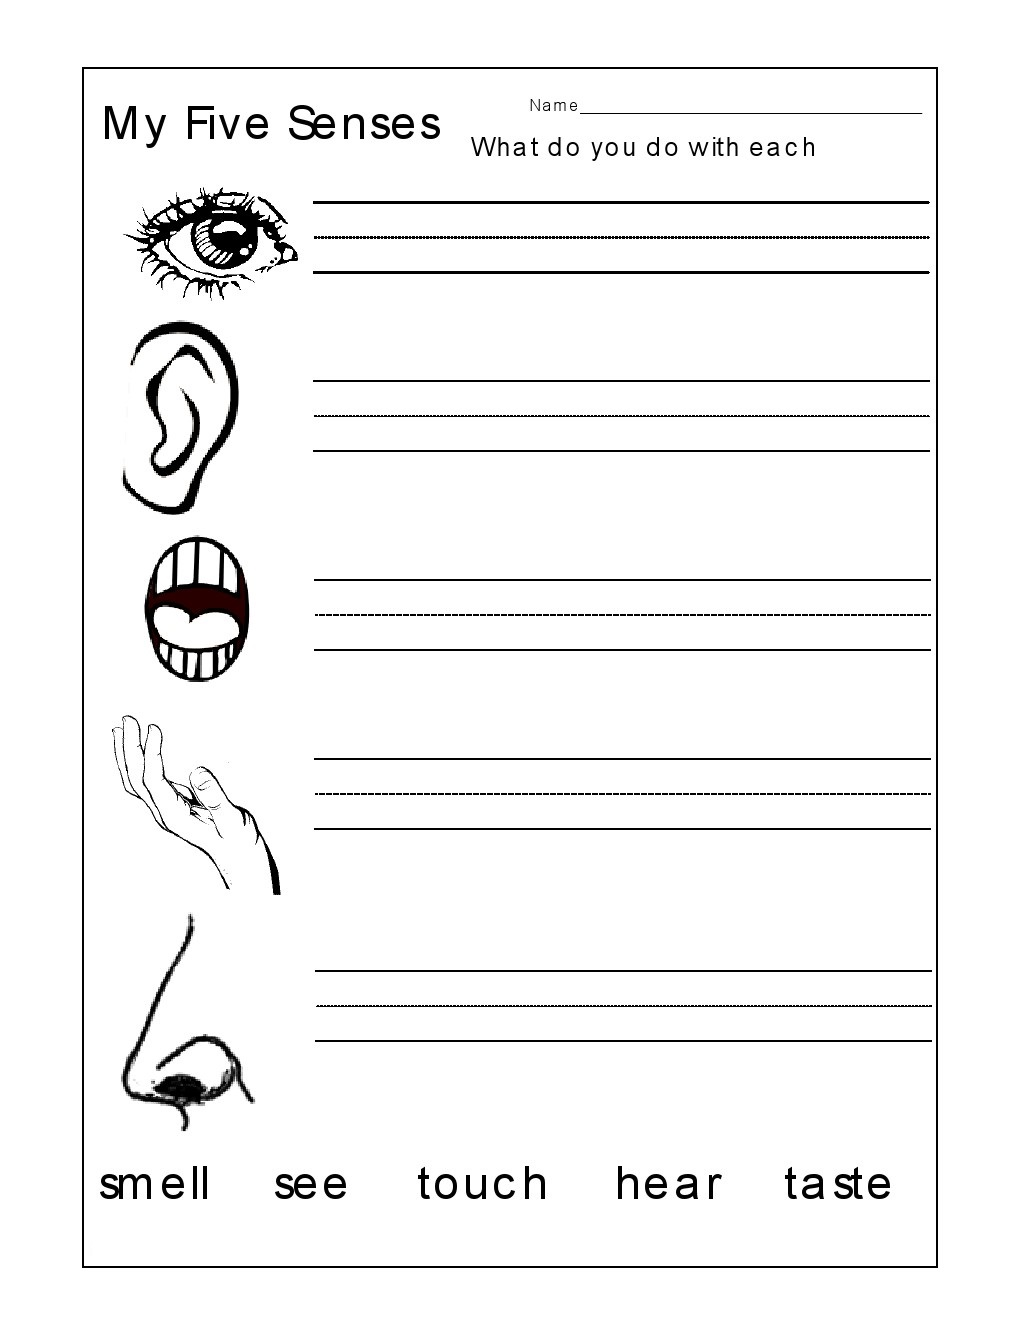 Kindergarten Worksheets Kindergarten Worksheets The 5 Senses – 5 Senses Worksheet